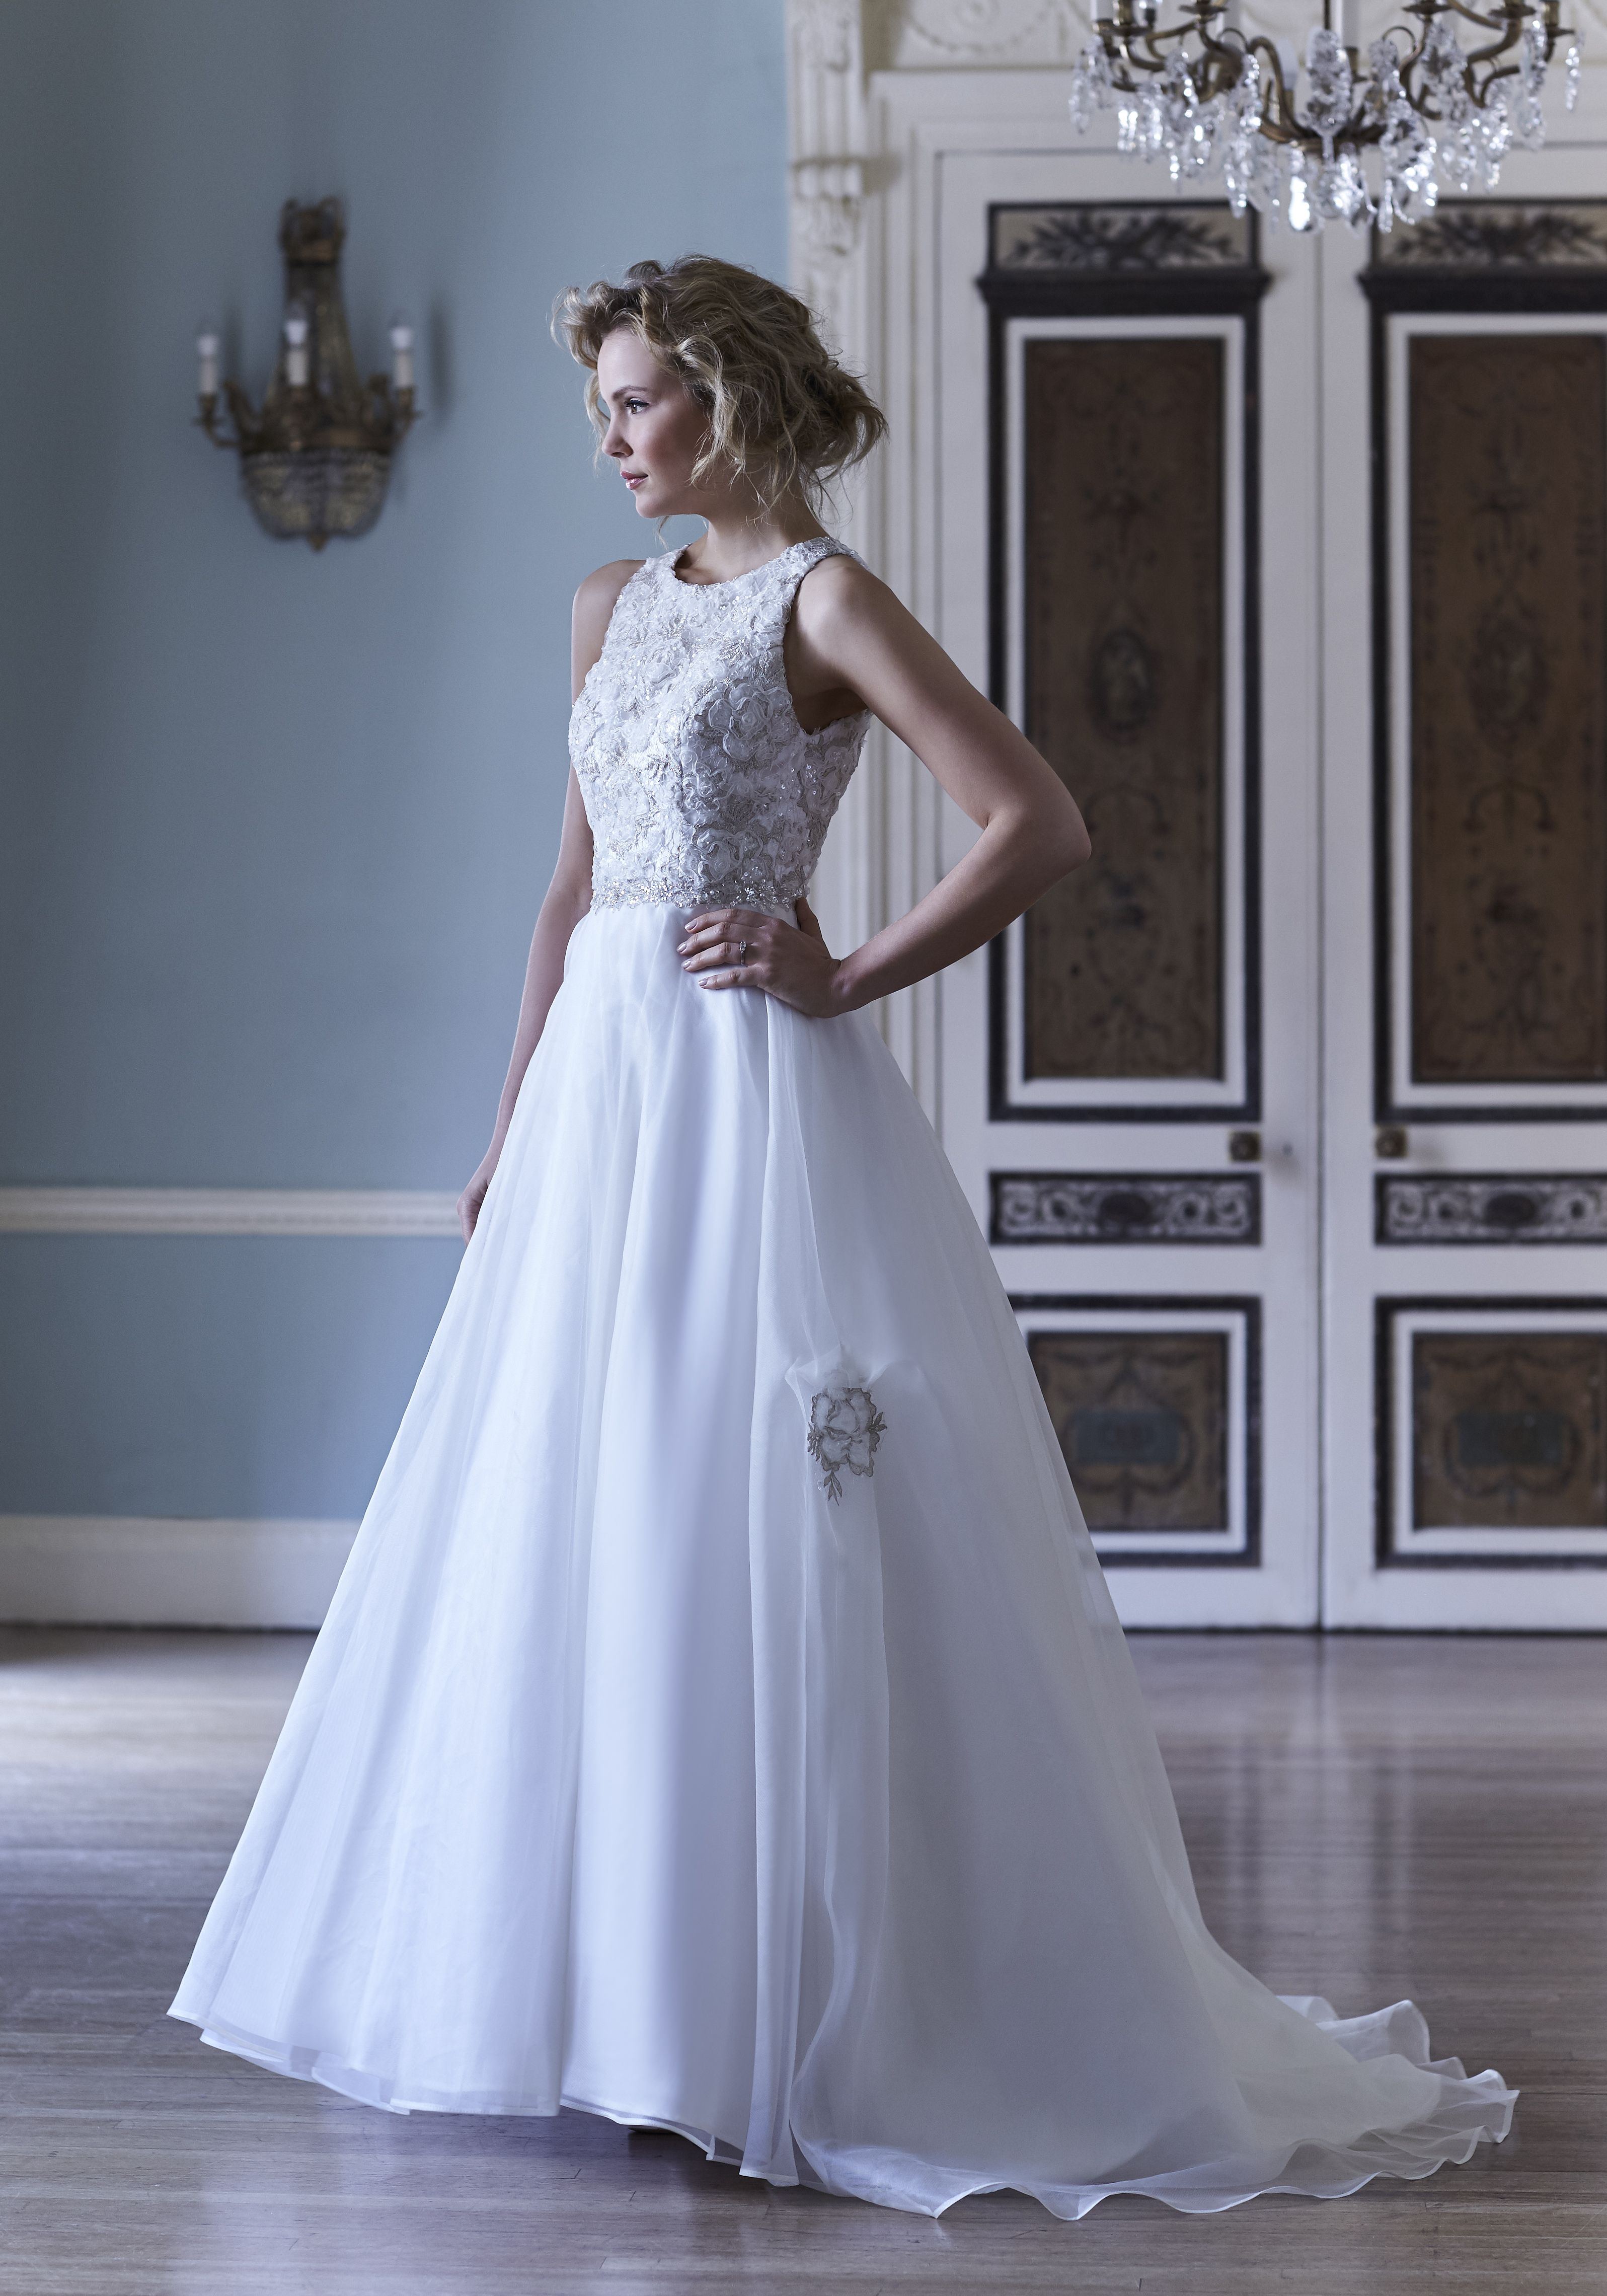 Sassi holfords hannah 2016 collection beautiful gowns wedding dresses sheffield from white room bridal wedding dress designer lace simple plain suzanne neville rosa clara jenny packham sassi holford halfpenny ombrellifo Choice Image